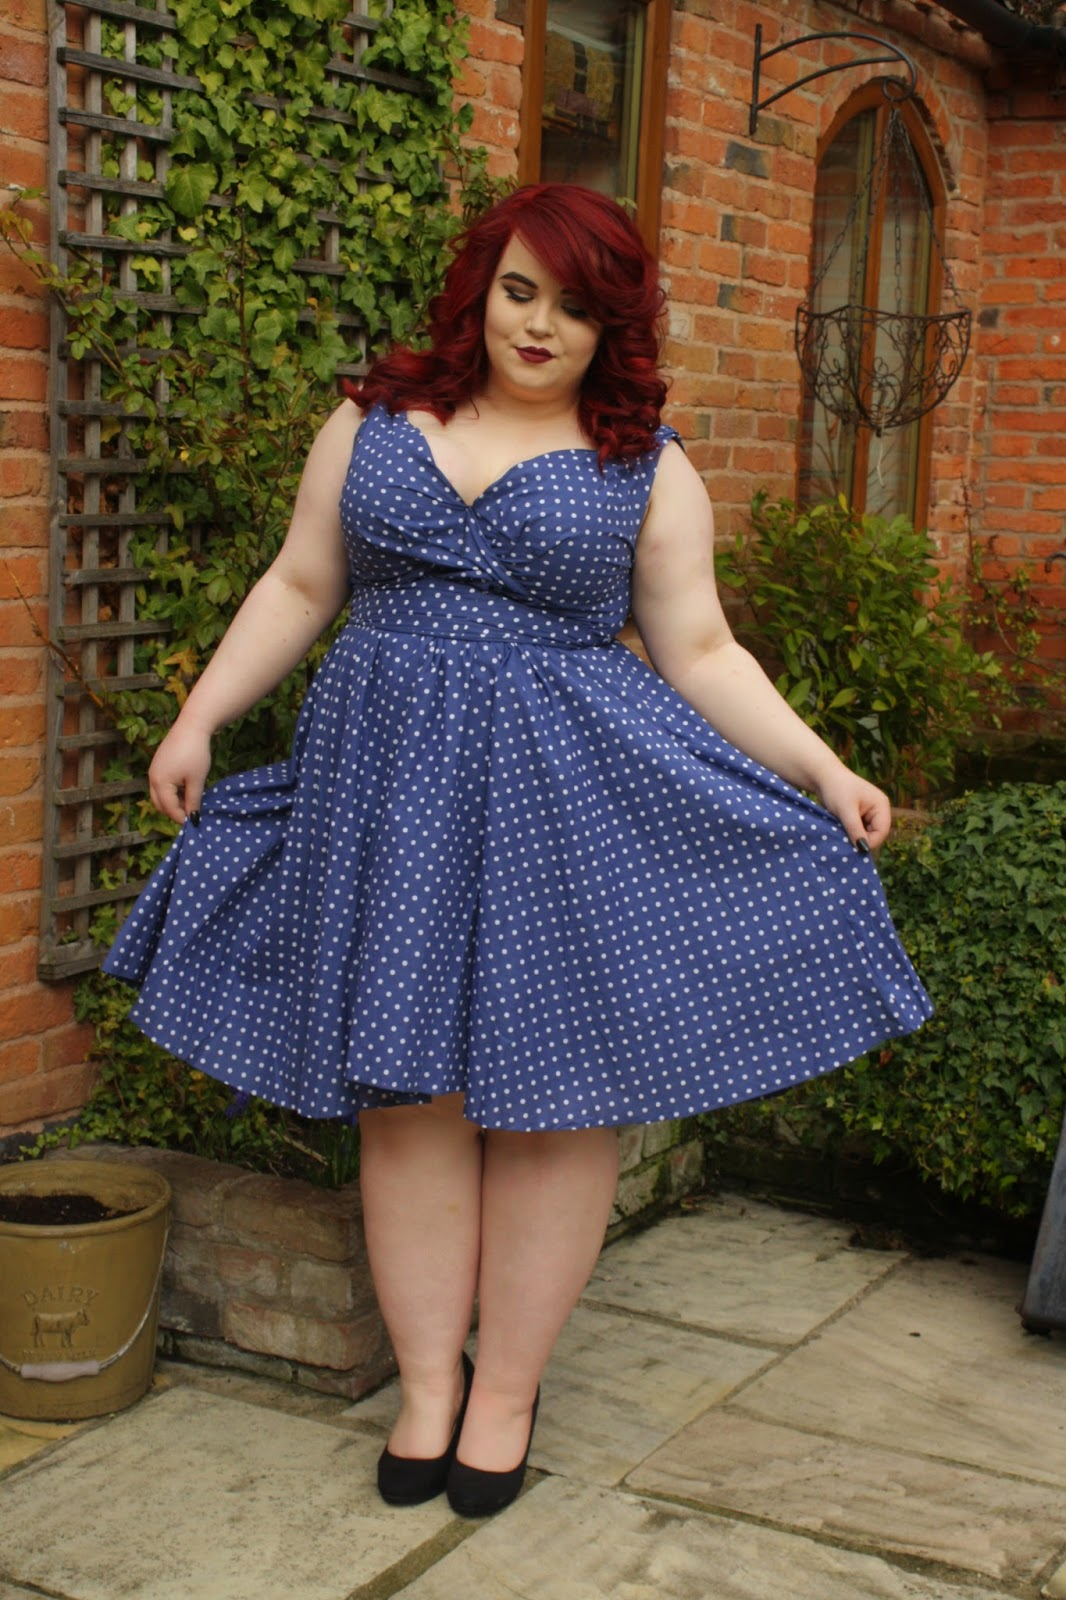 BBW Couture Blue Polka Dot 1950s Vintage Party Dress, vintage plus size, plus size fashion blogger, georgina grogan, shemightbeloved